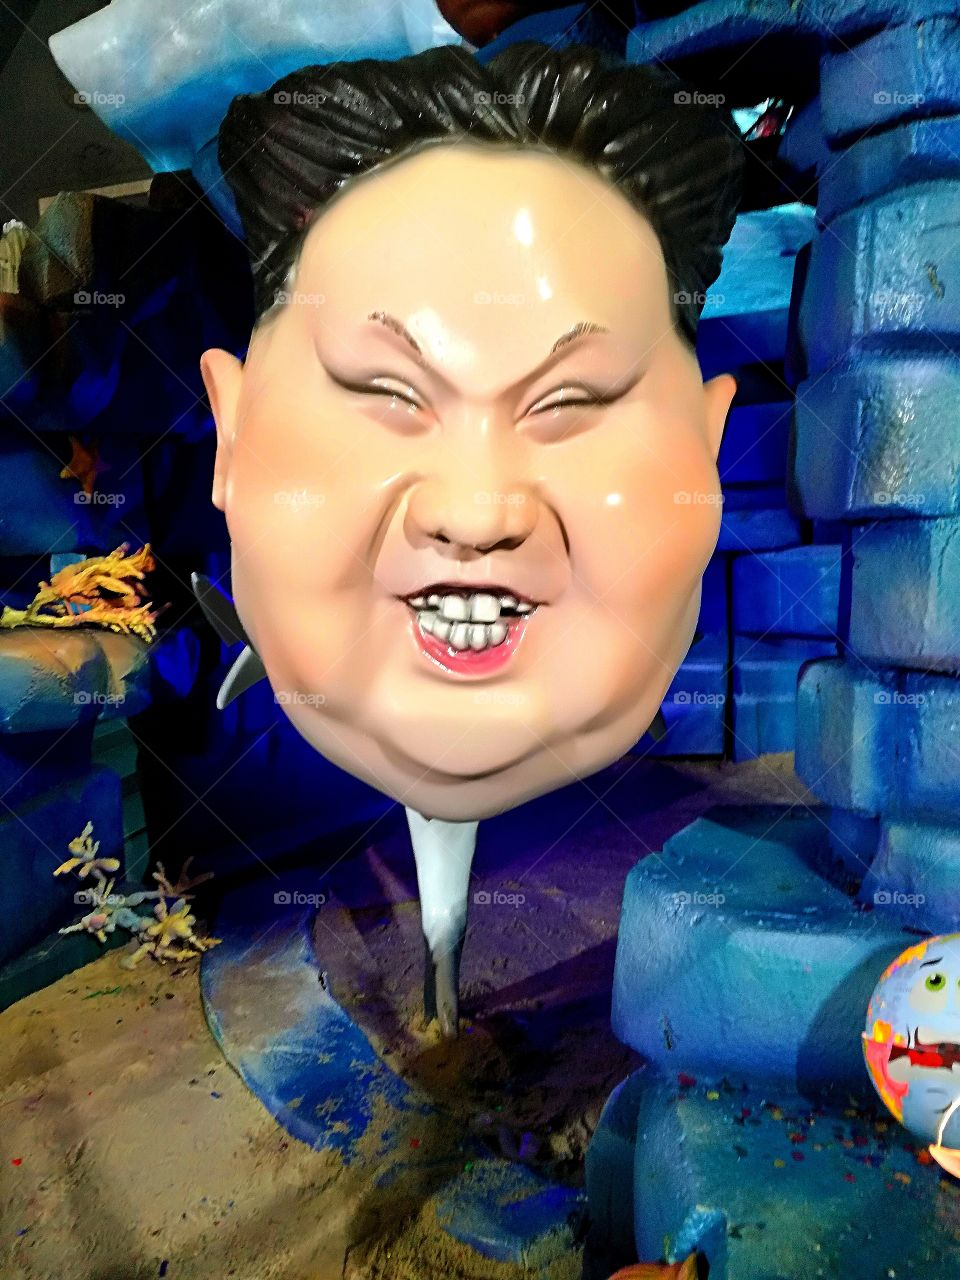 #kim jong un #art #picture #funny #entertainment #floap #smile #buy #voted #vote